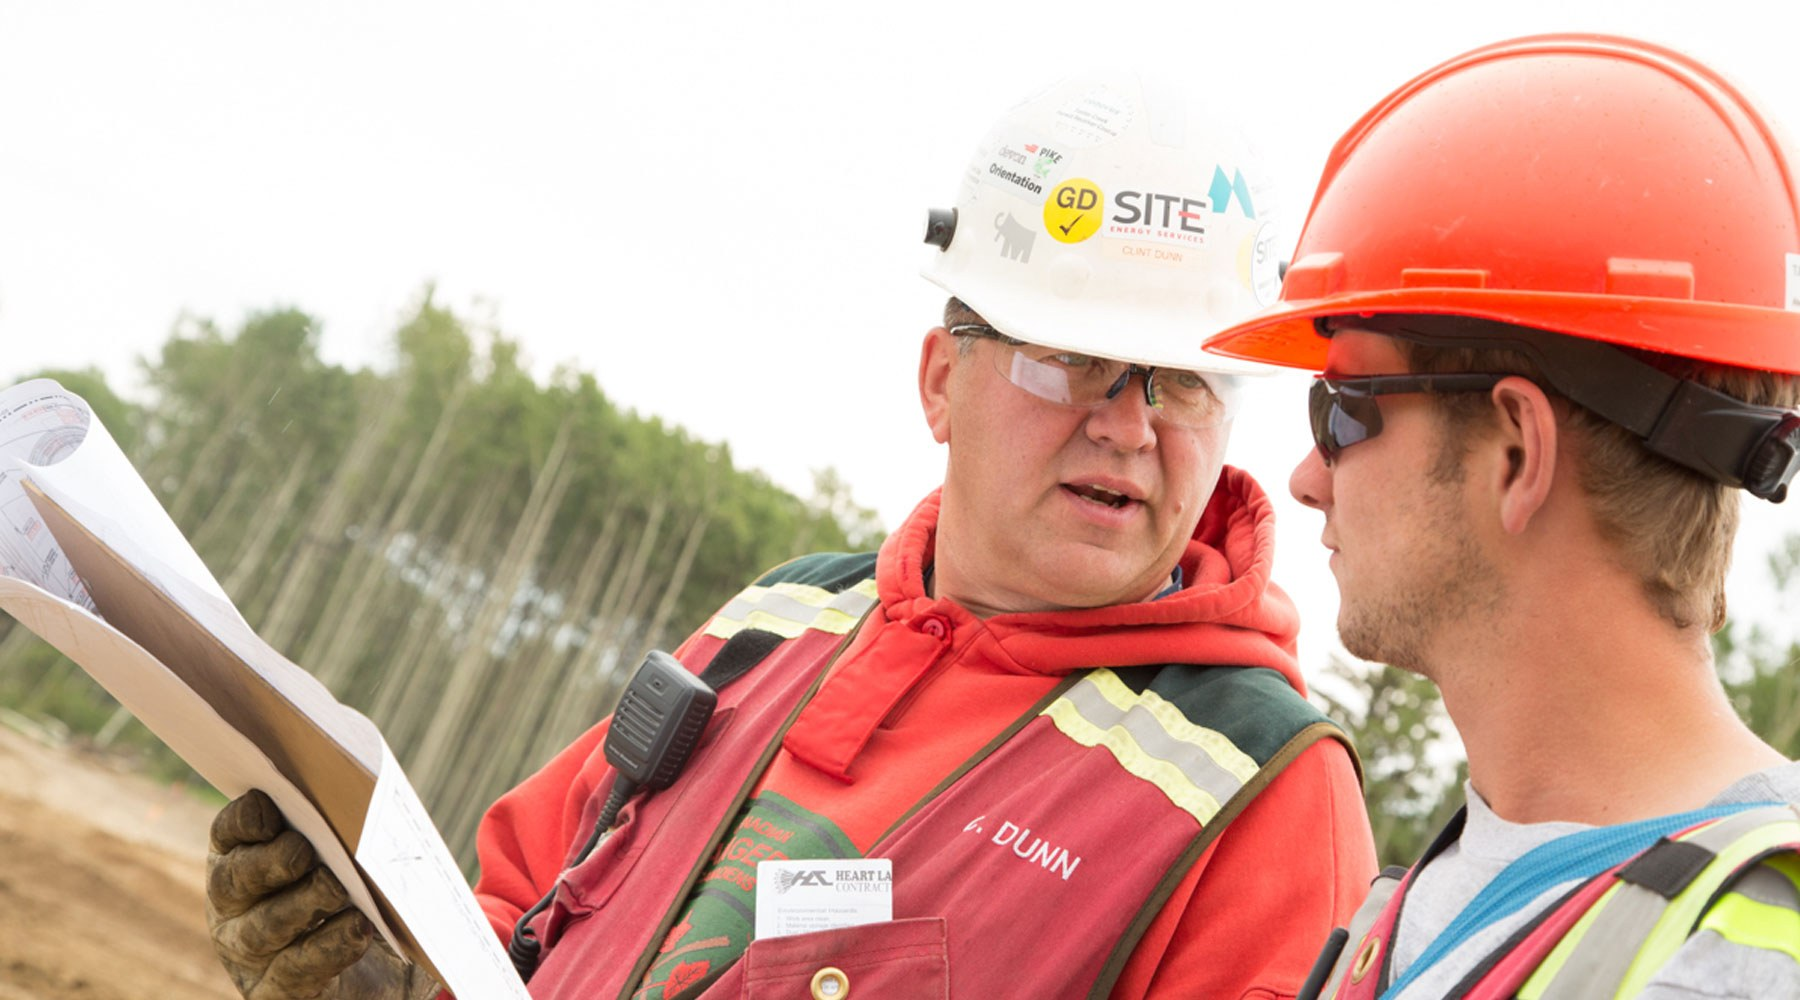 Image of two workers wearing PPE and hardhats, holding papers and conversing